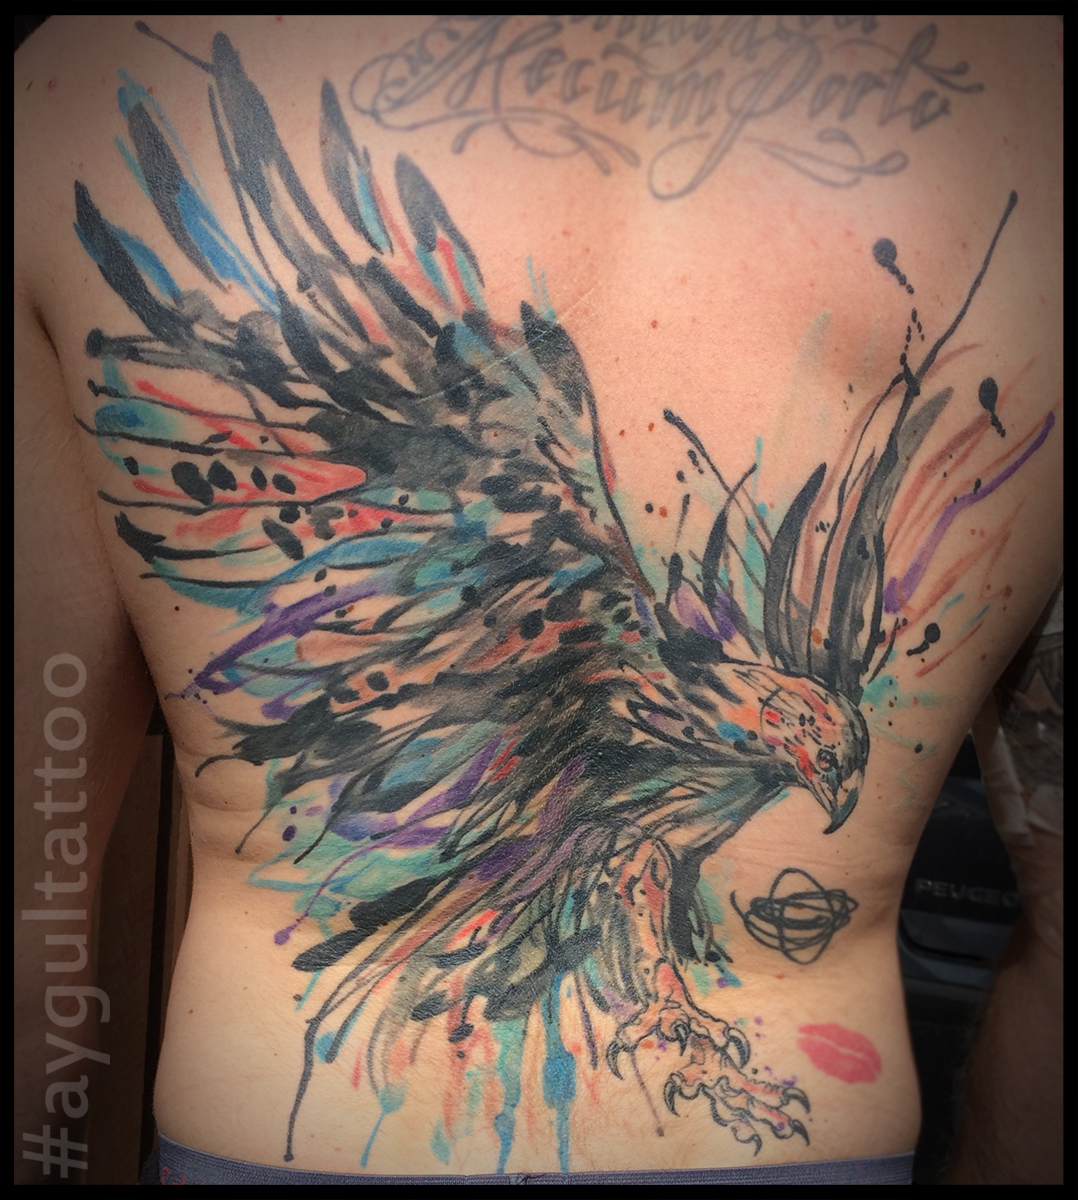 #eagle #watercolor #aygultattoo